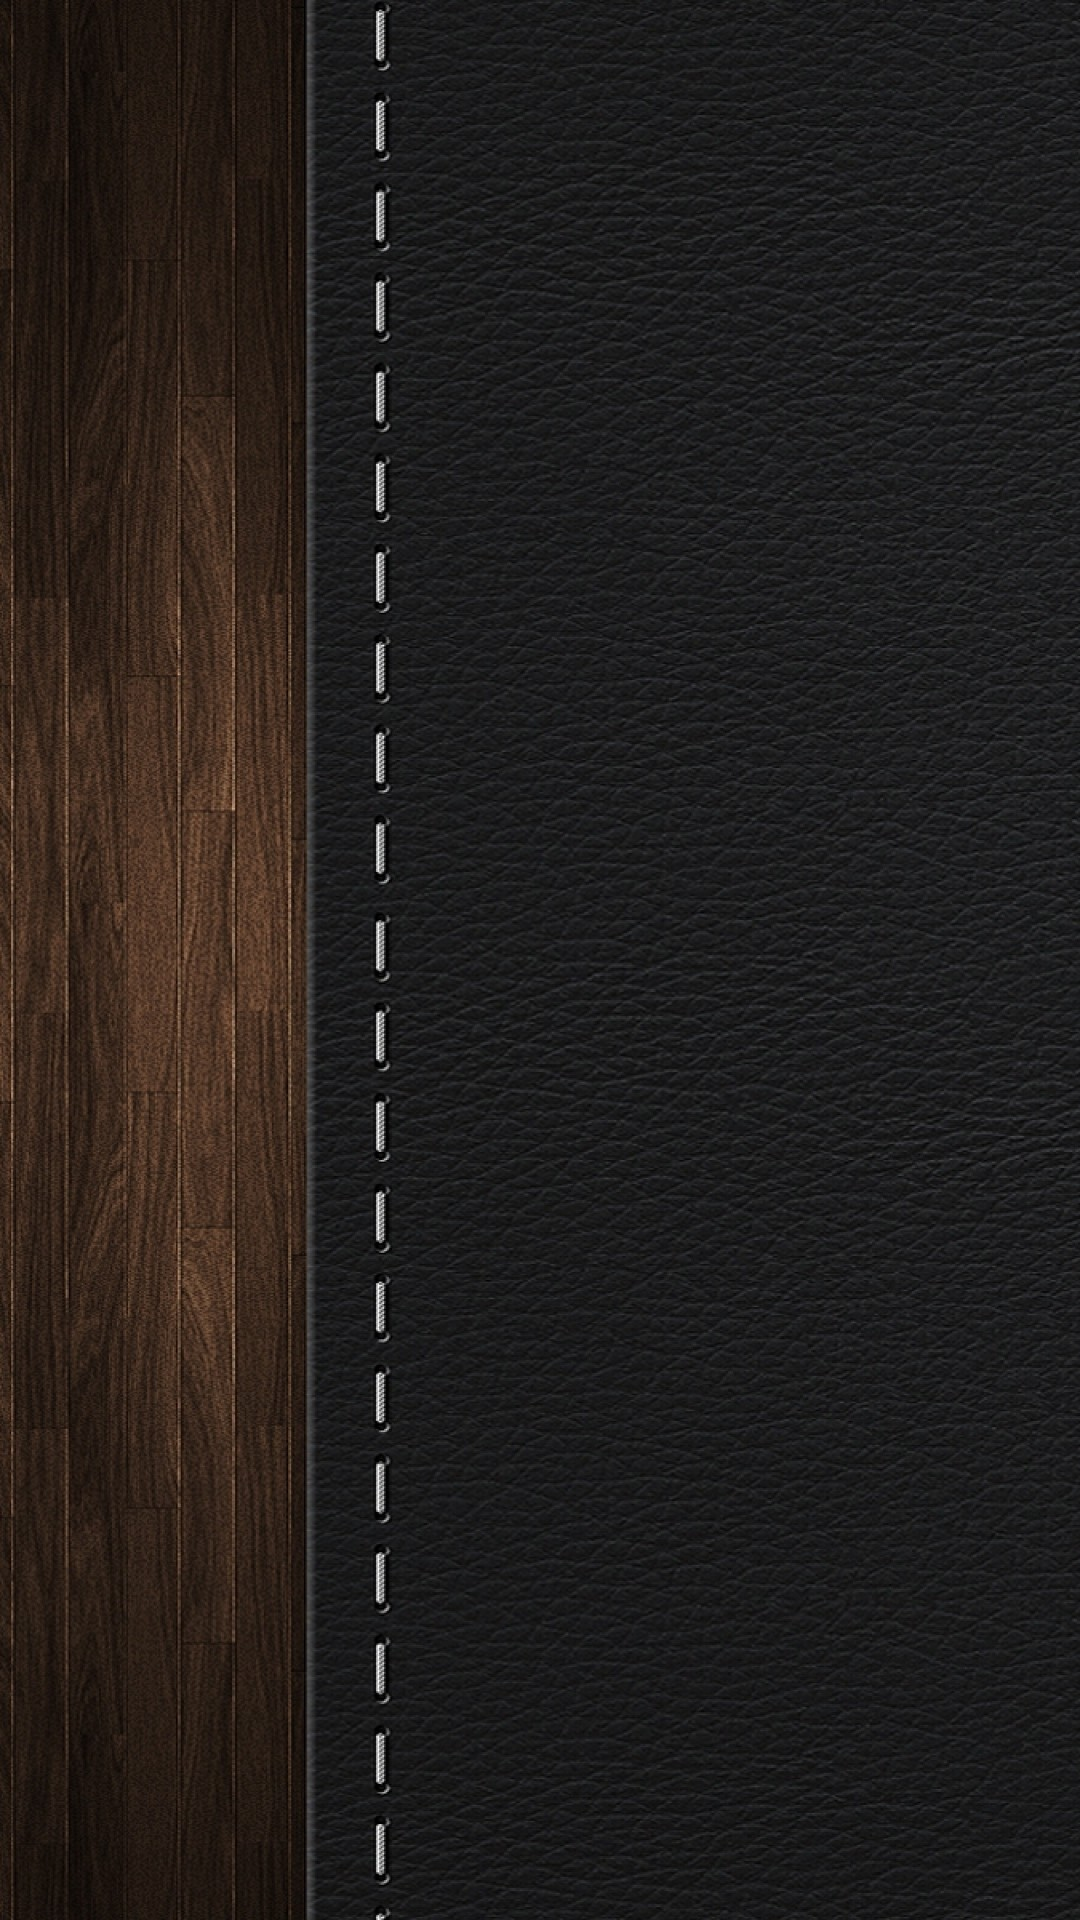 1080x1920  Wallpaper leather, wood, background, texture